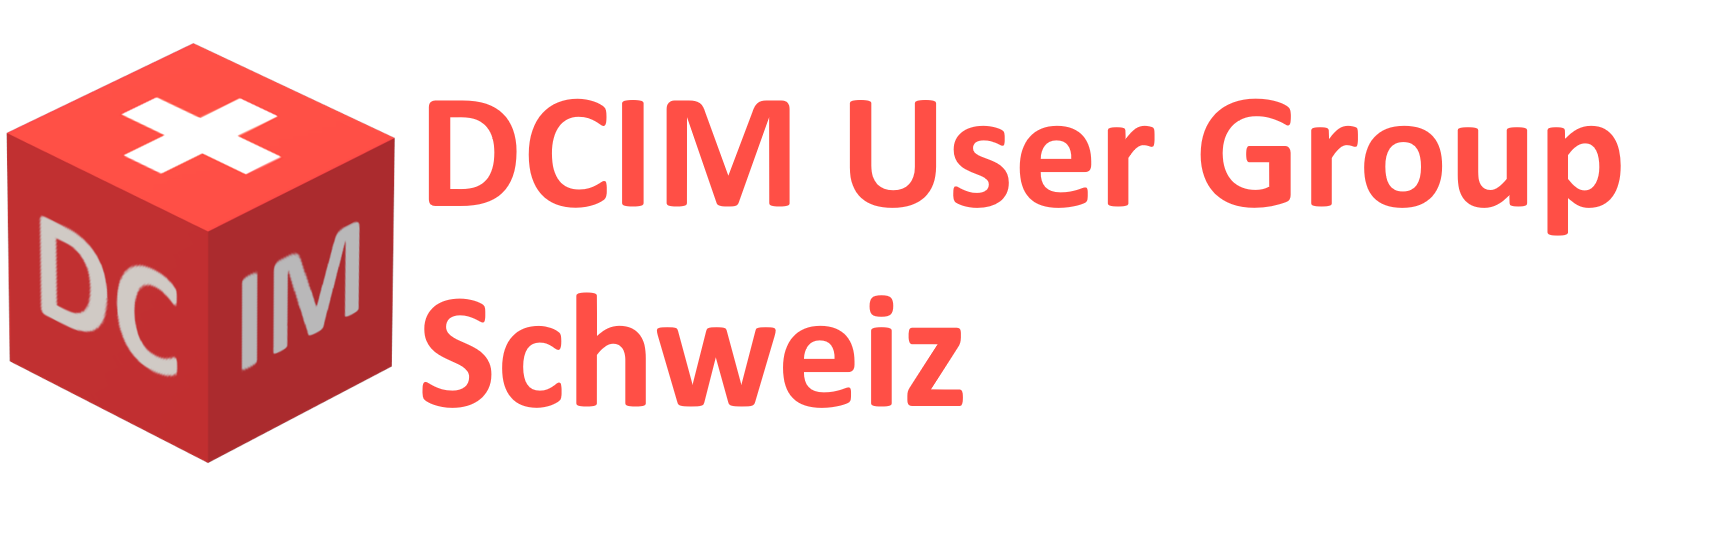 DCIM User Group Schweiz